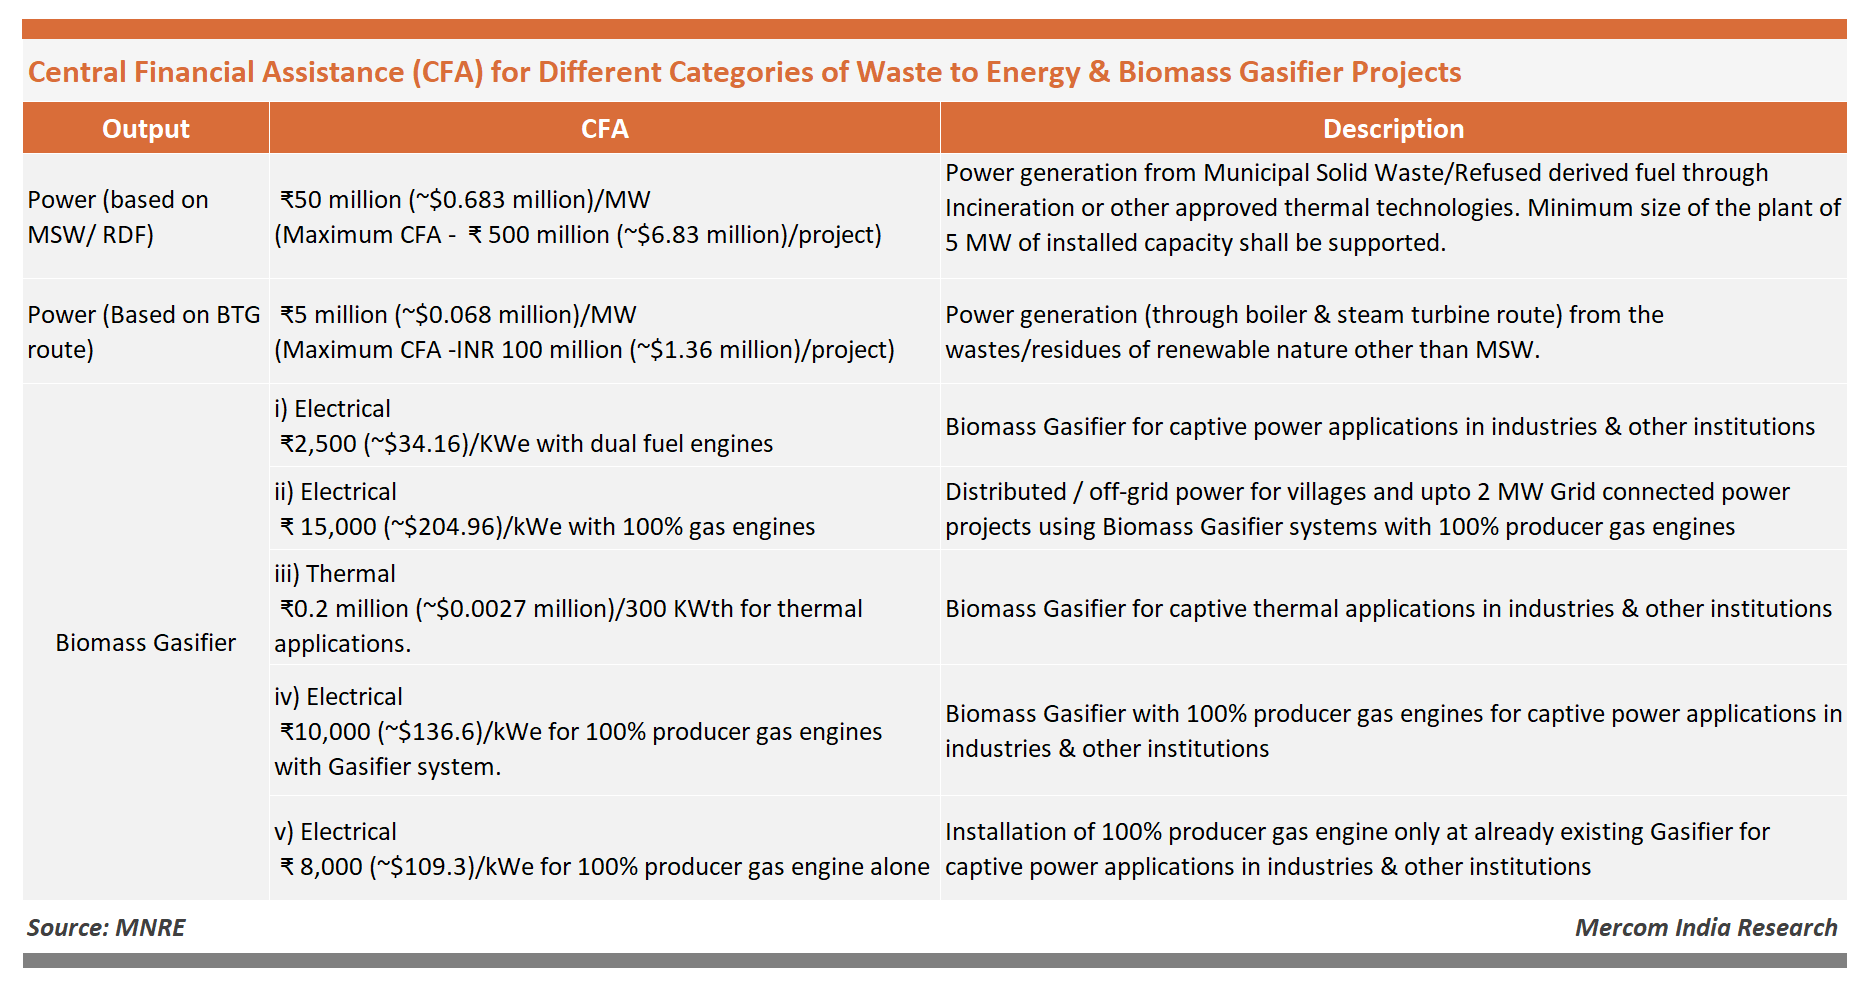 Central Financial Assistance (CFA) - for Different Categories of Waste to Energy & Biomass Gasifier Projects